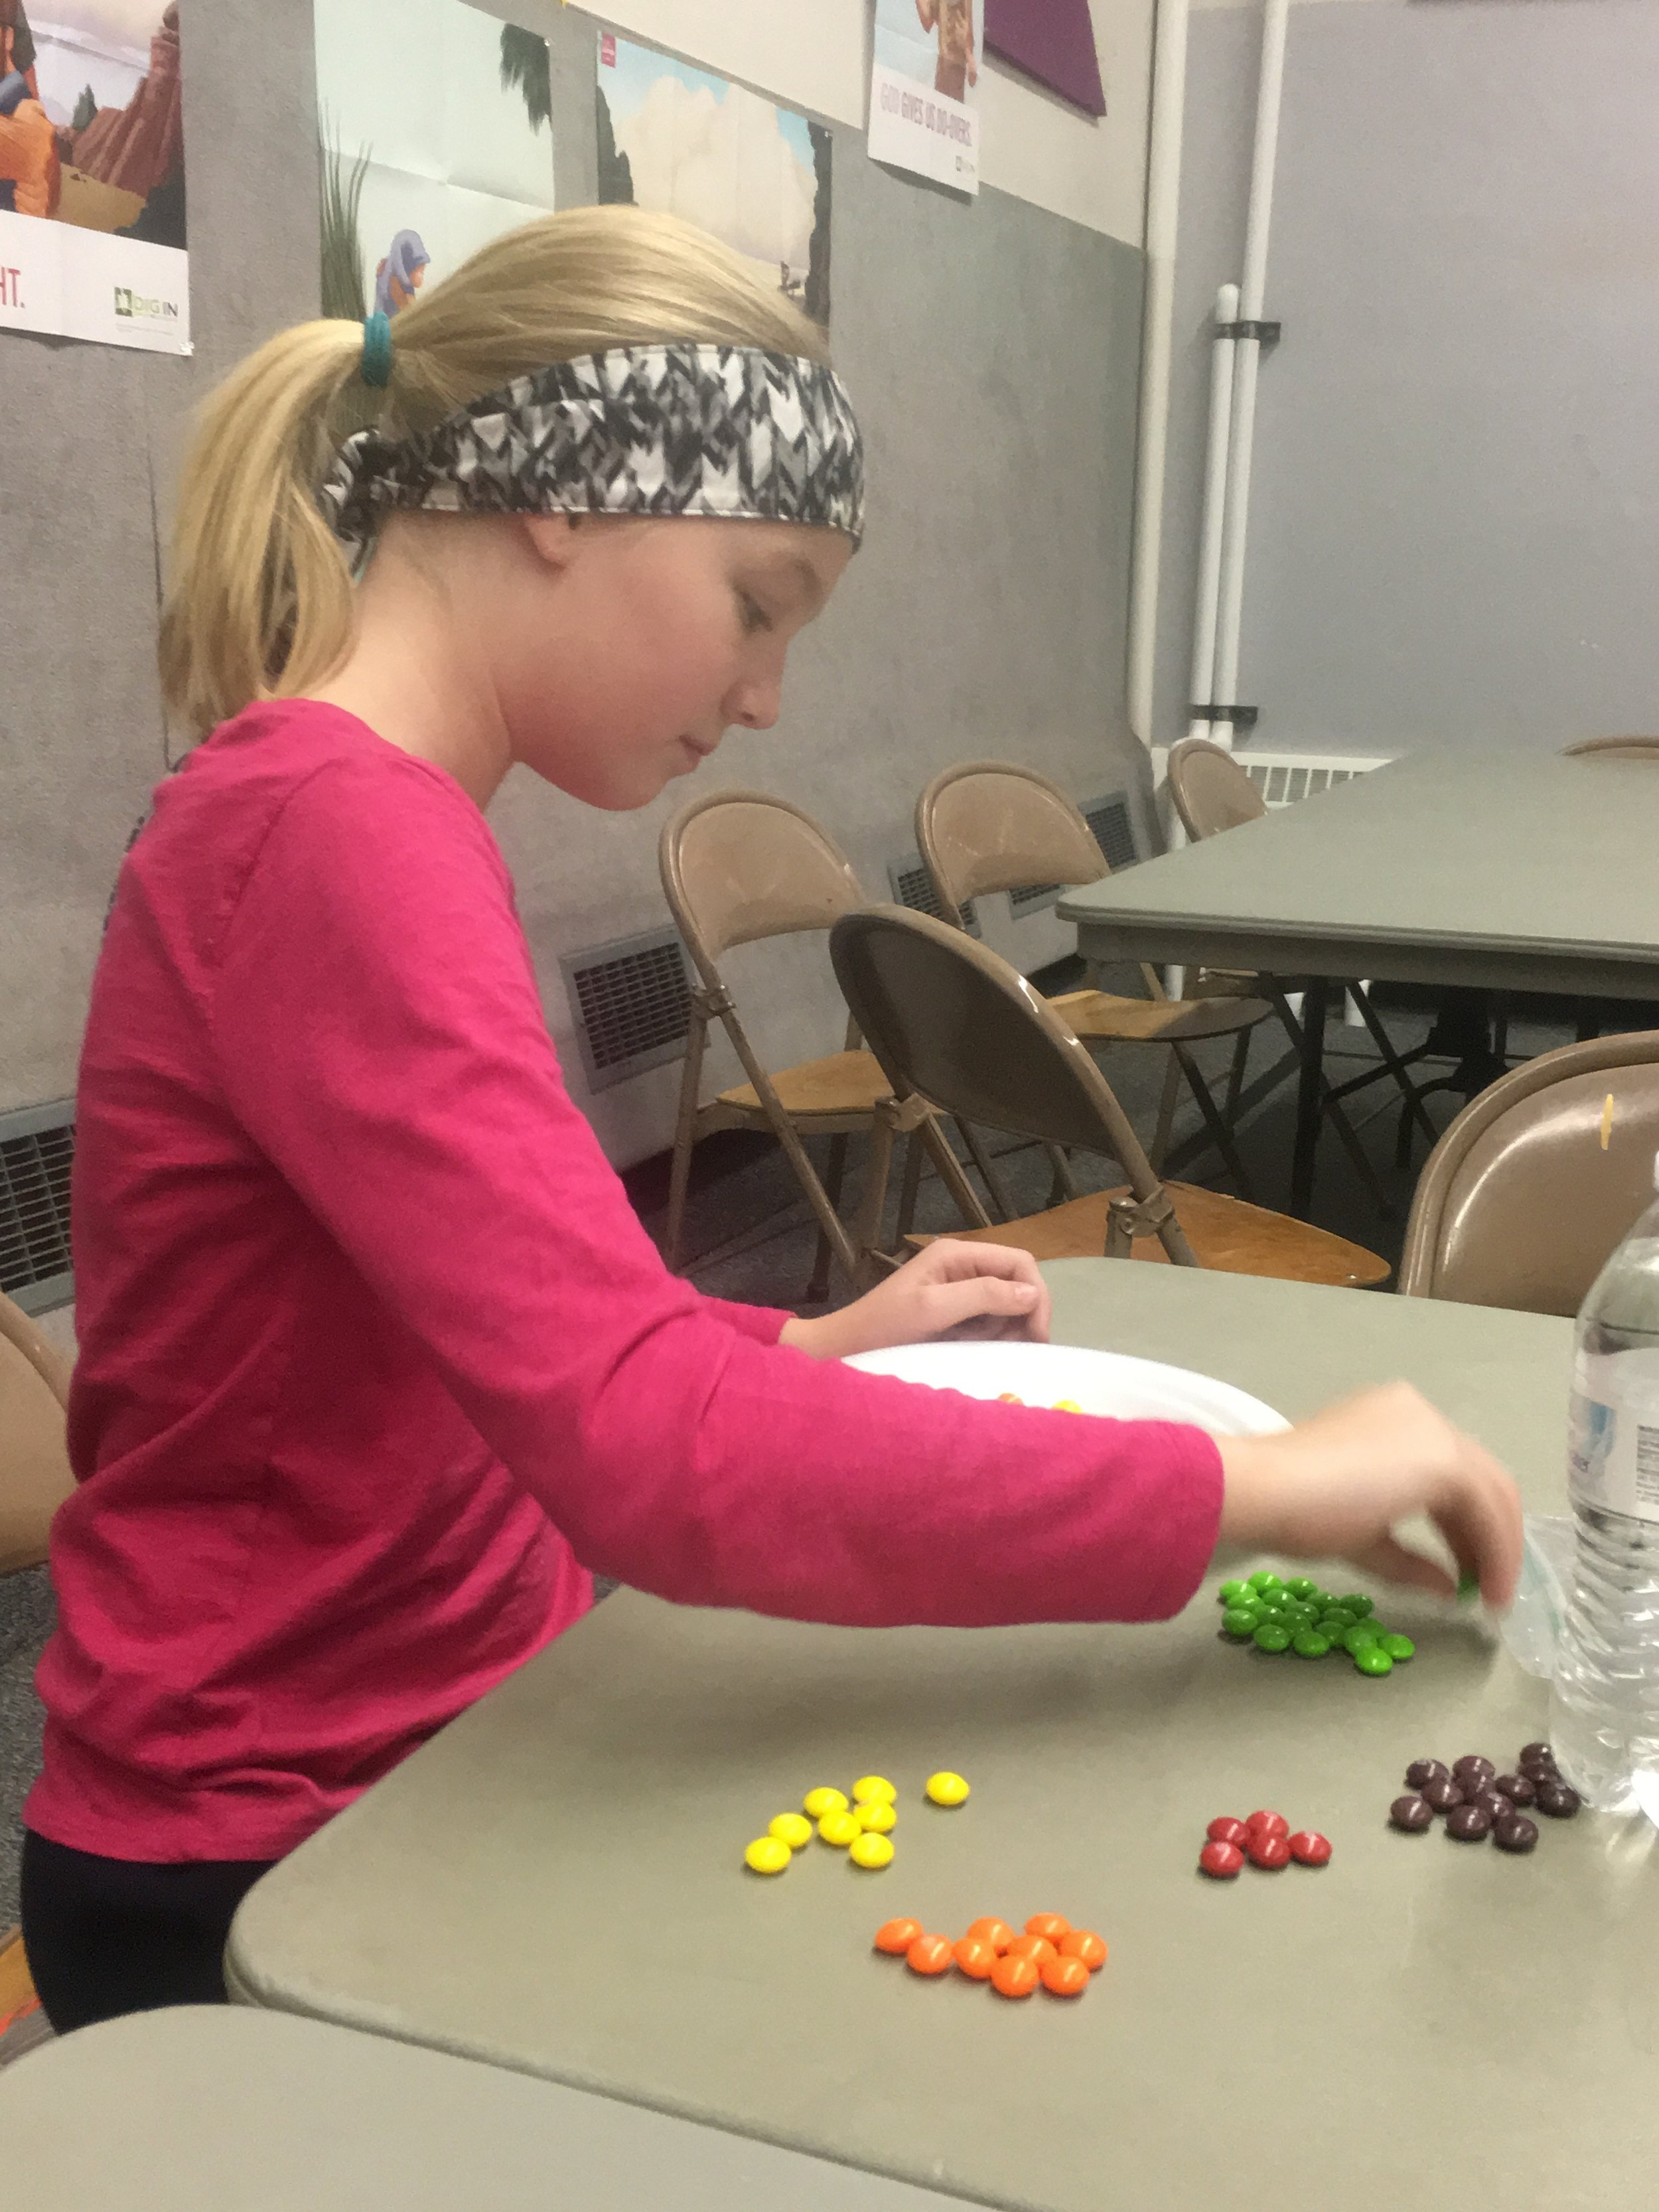 Kids got a bag of skittles, a plate and a water bottle. They needed to put 20 skittles around the edge of the plate.